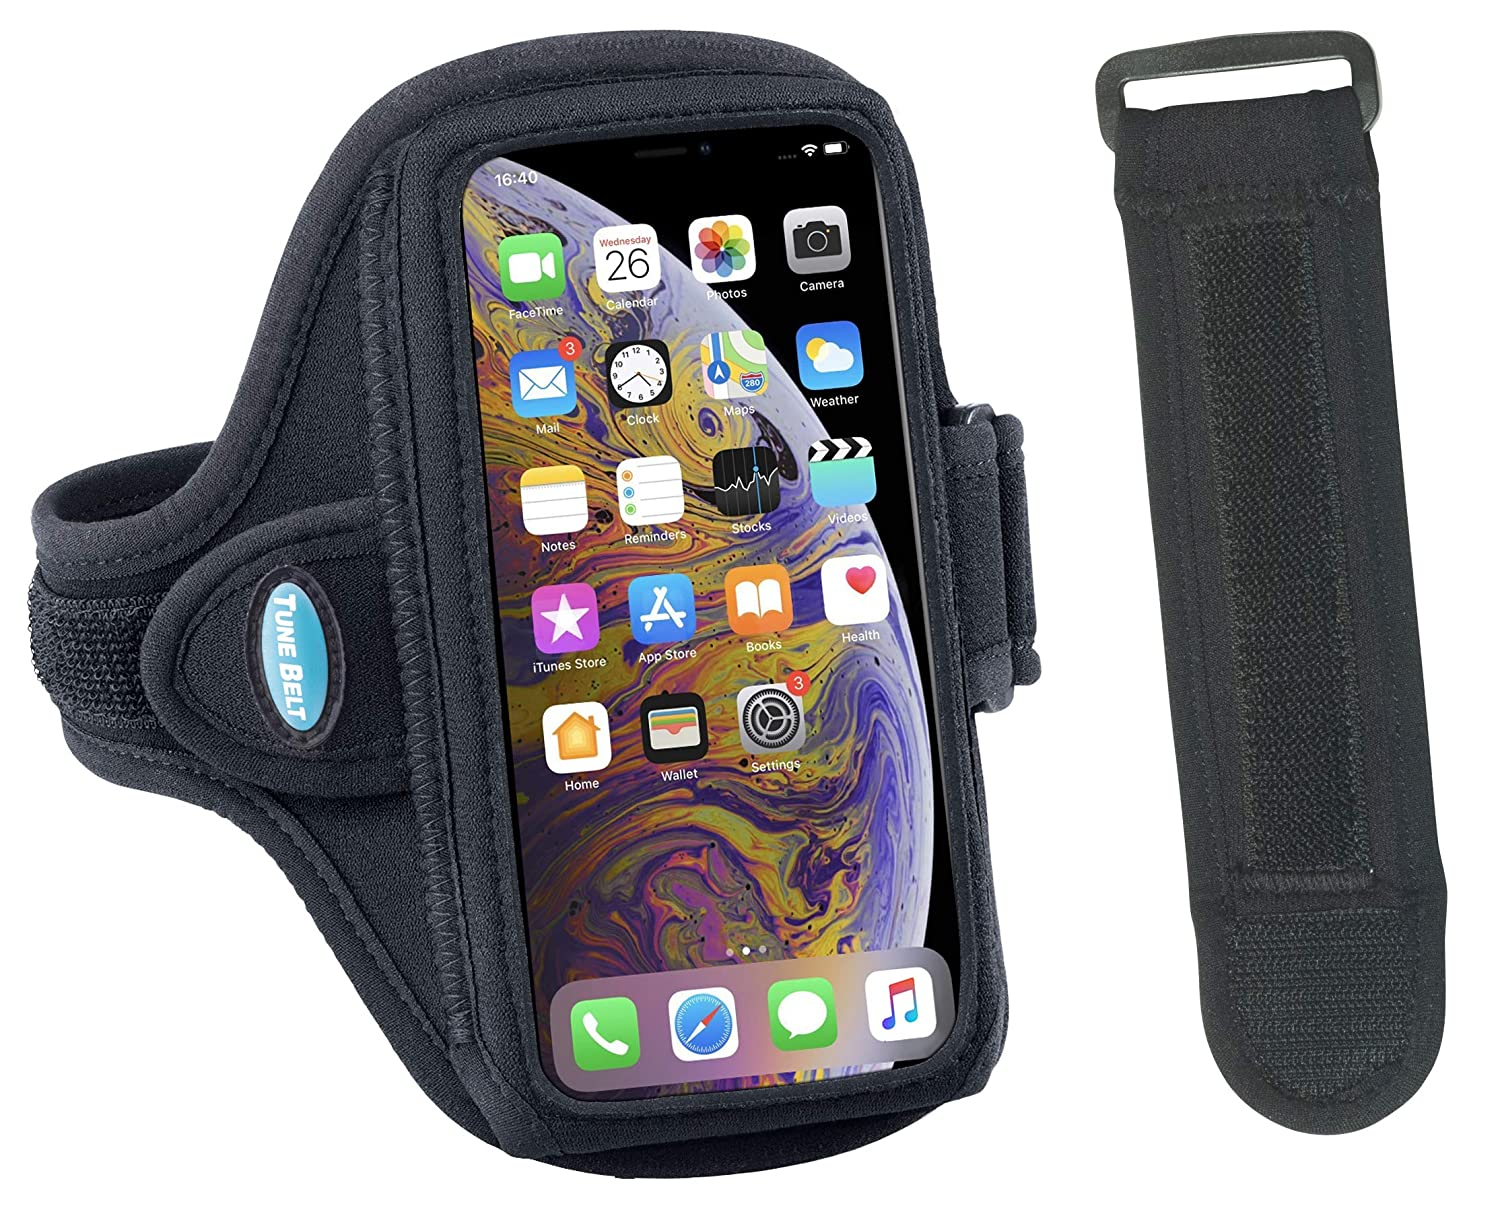 Armband Compatible with iPhone Xs Max, Xr, 8 7 6s 6 Plus, Galaxy S8 S9 Plus and Note 8 9 - for Running & Working Out - Sweat-Resistant for Men & Women [EX3 Armband Extender for Large Arms Included] Tune Belt Inc. AB91EX3